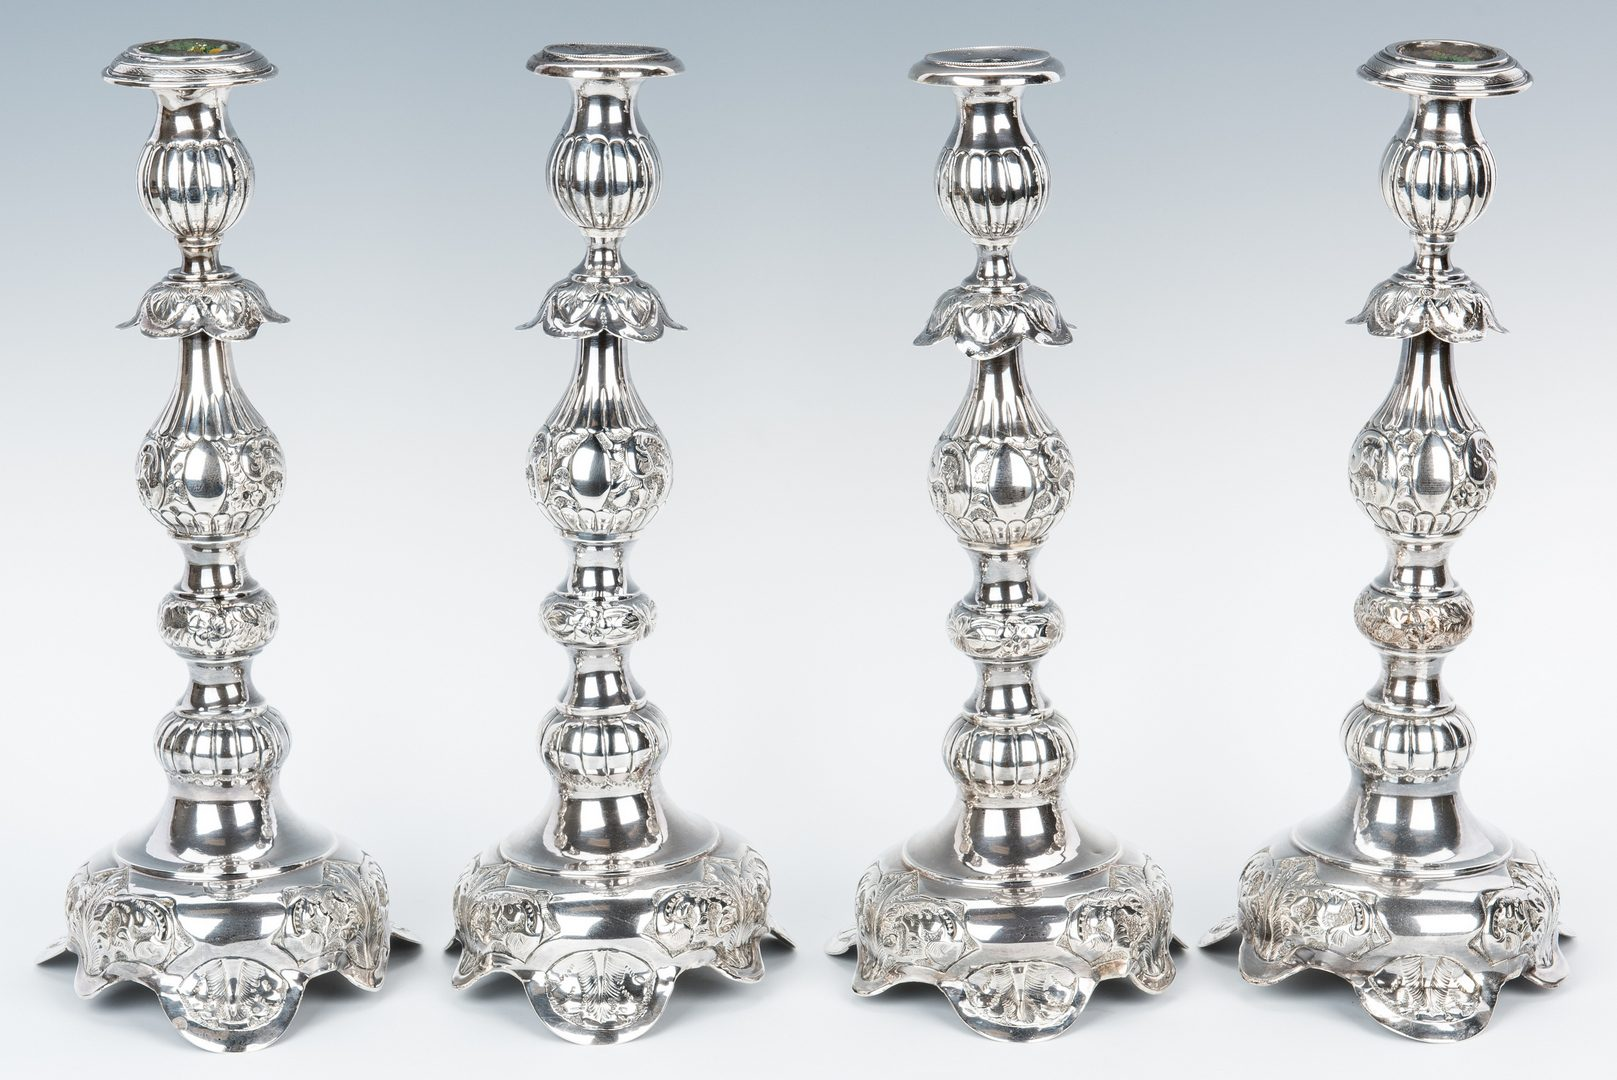 Lot 412: 4 Russian Baroque Style Silver Candlesticks